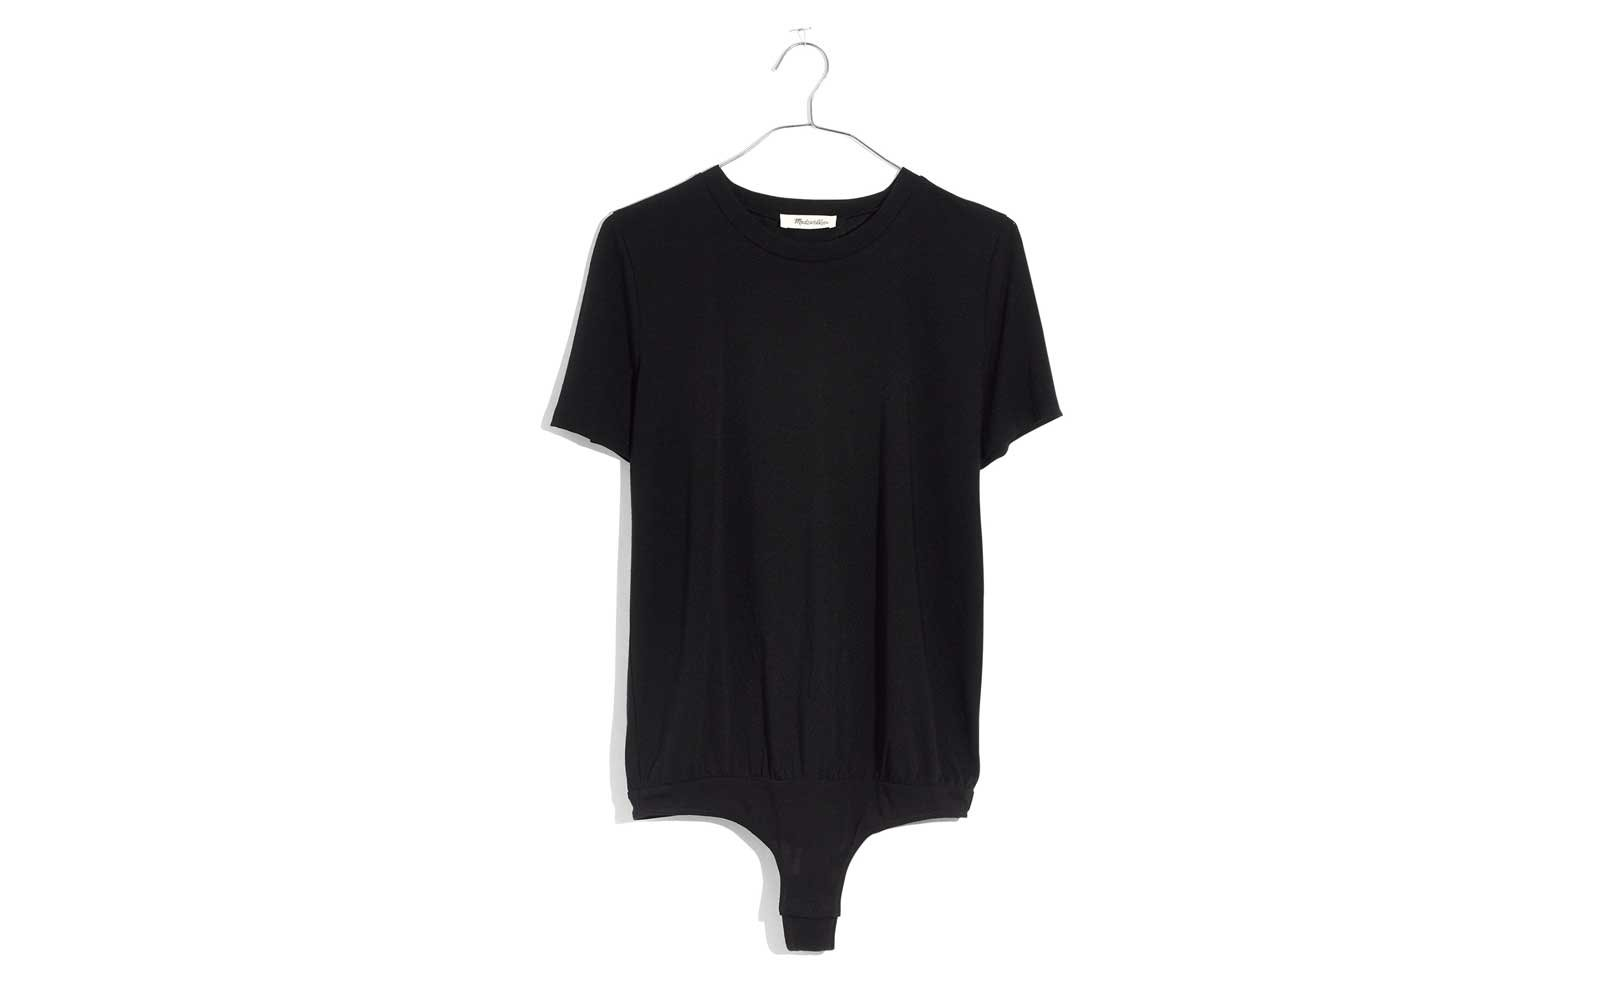 Bodysuit T-shirt